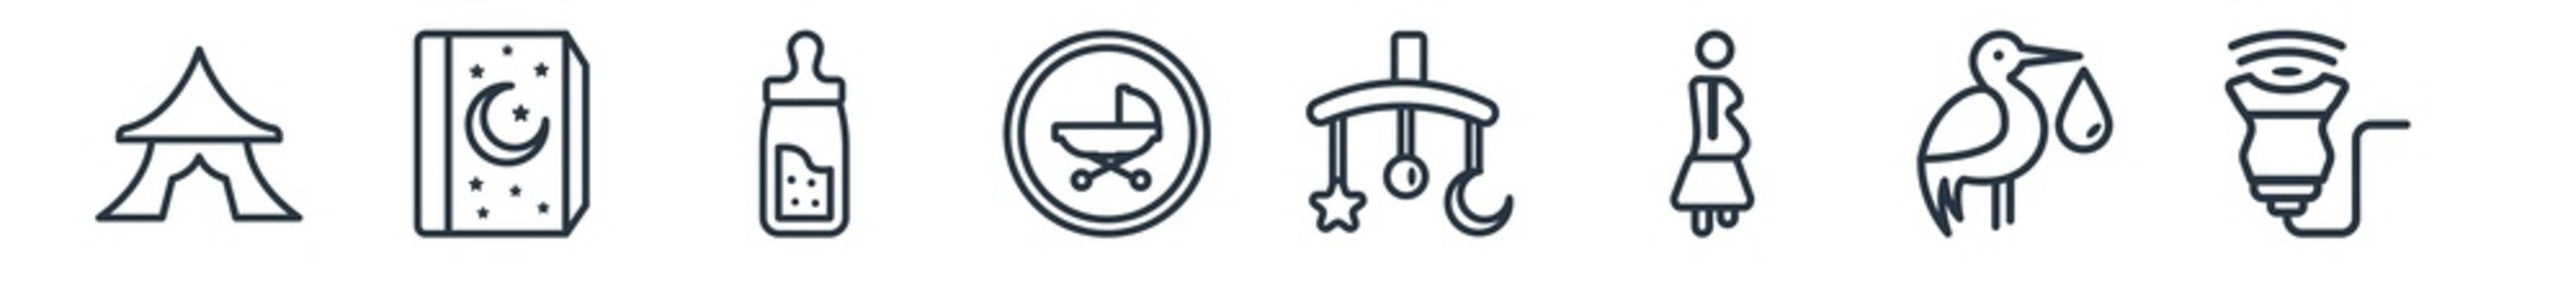 linear set of kid and baby outline icons. line vector icons such as circus, tale, feeder, button, crib toy, ultrasound vector illustration.